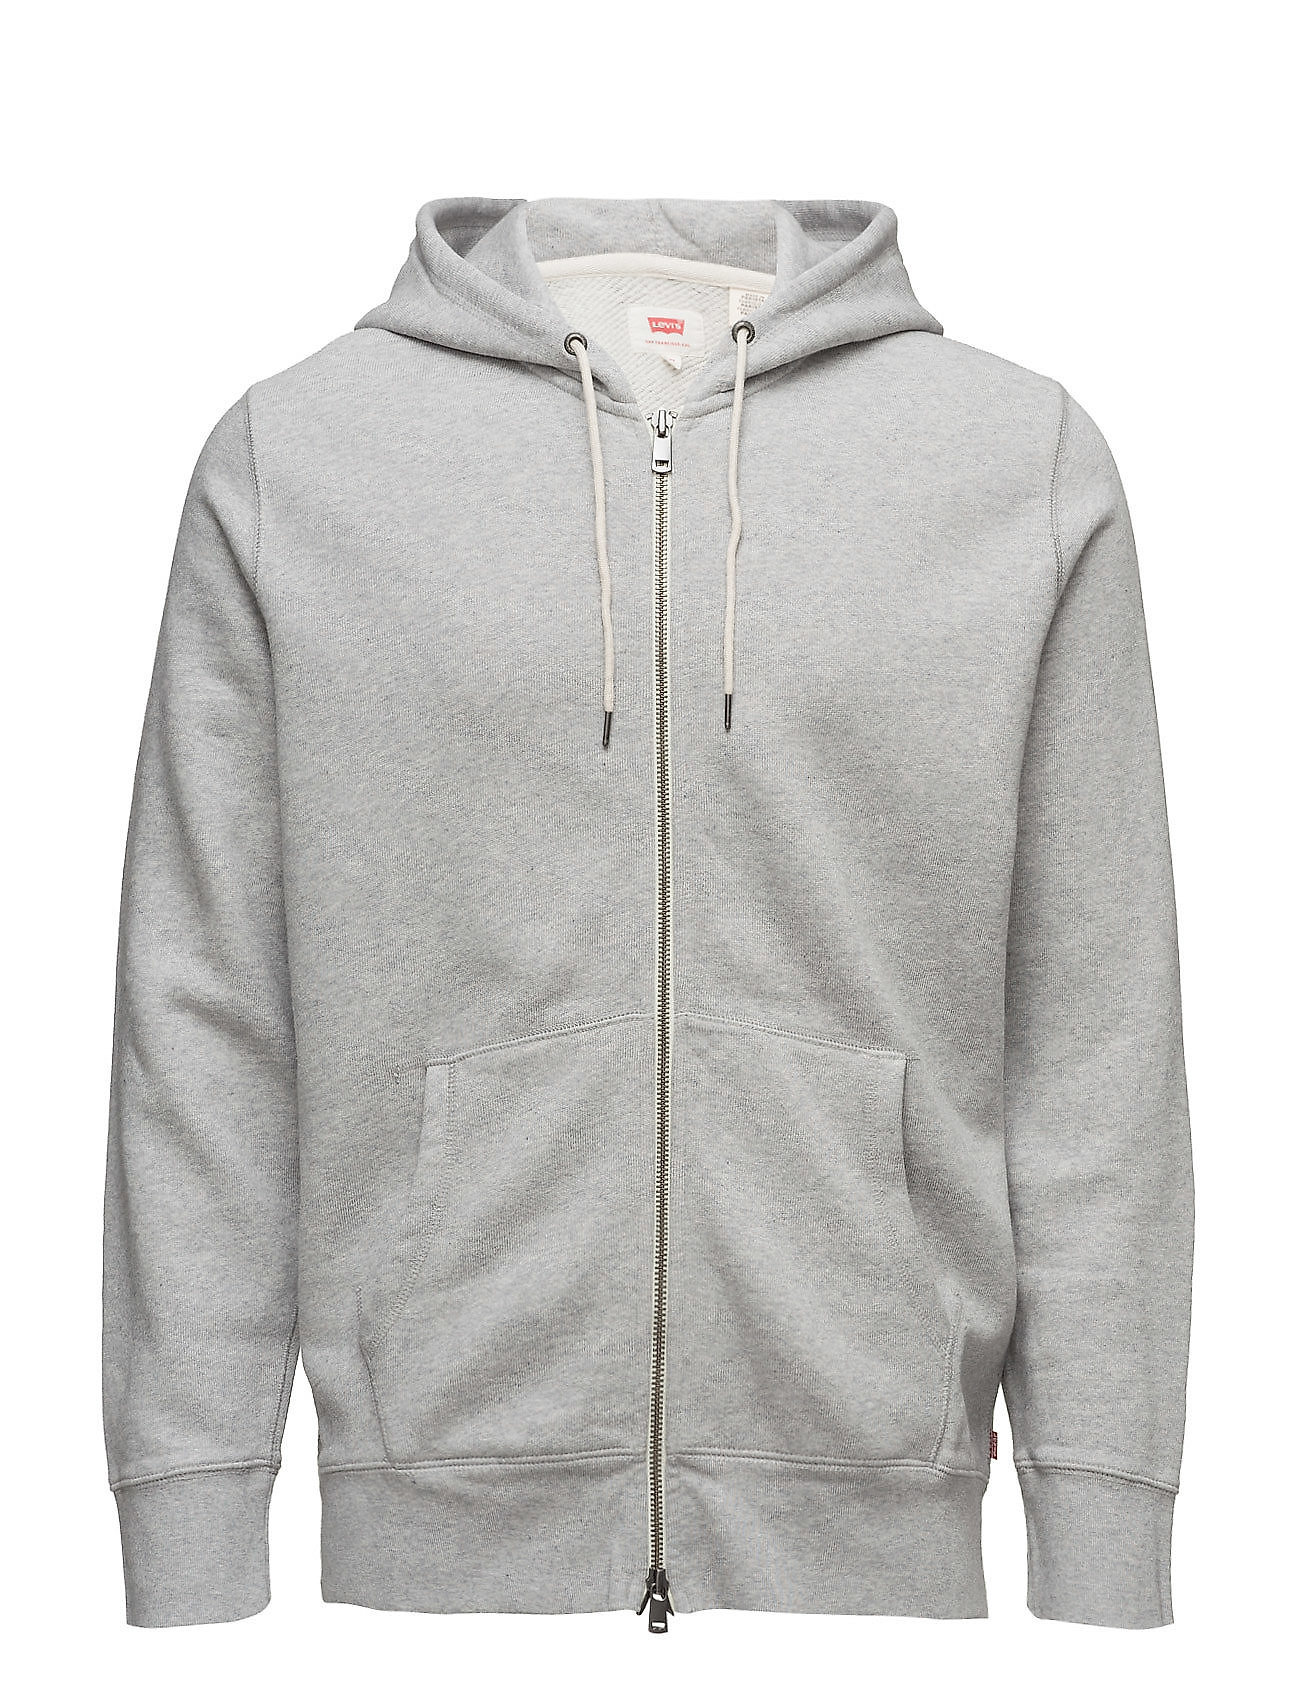 Original Zip Up Hoodie 2 Mediu thumbnail